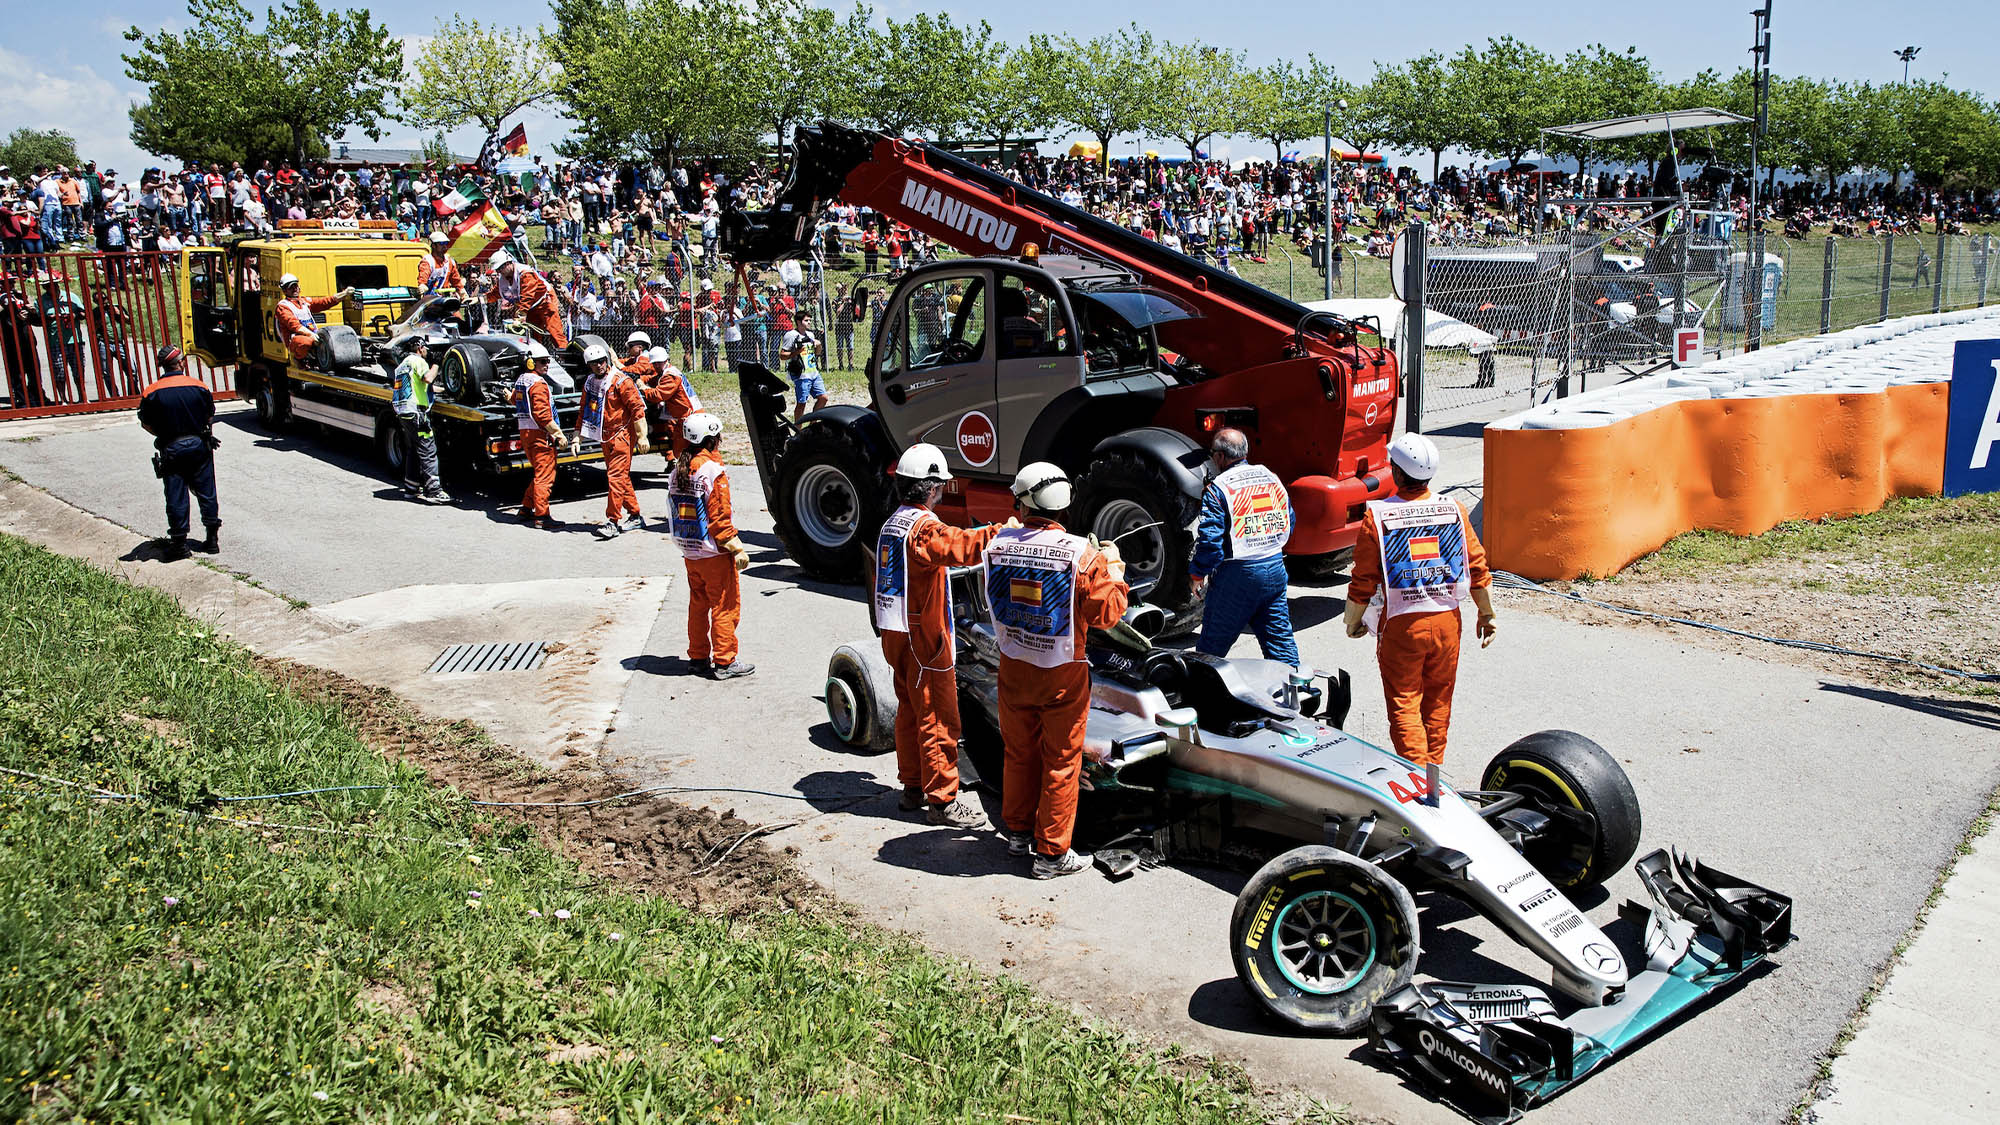 Nico Rosberg and Lewis Hamilton's wrecked Mercedes after the team-mates collided in the 2016 Spanish Grand Prix